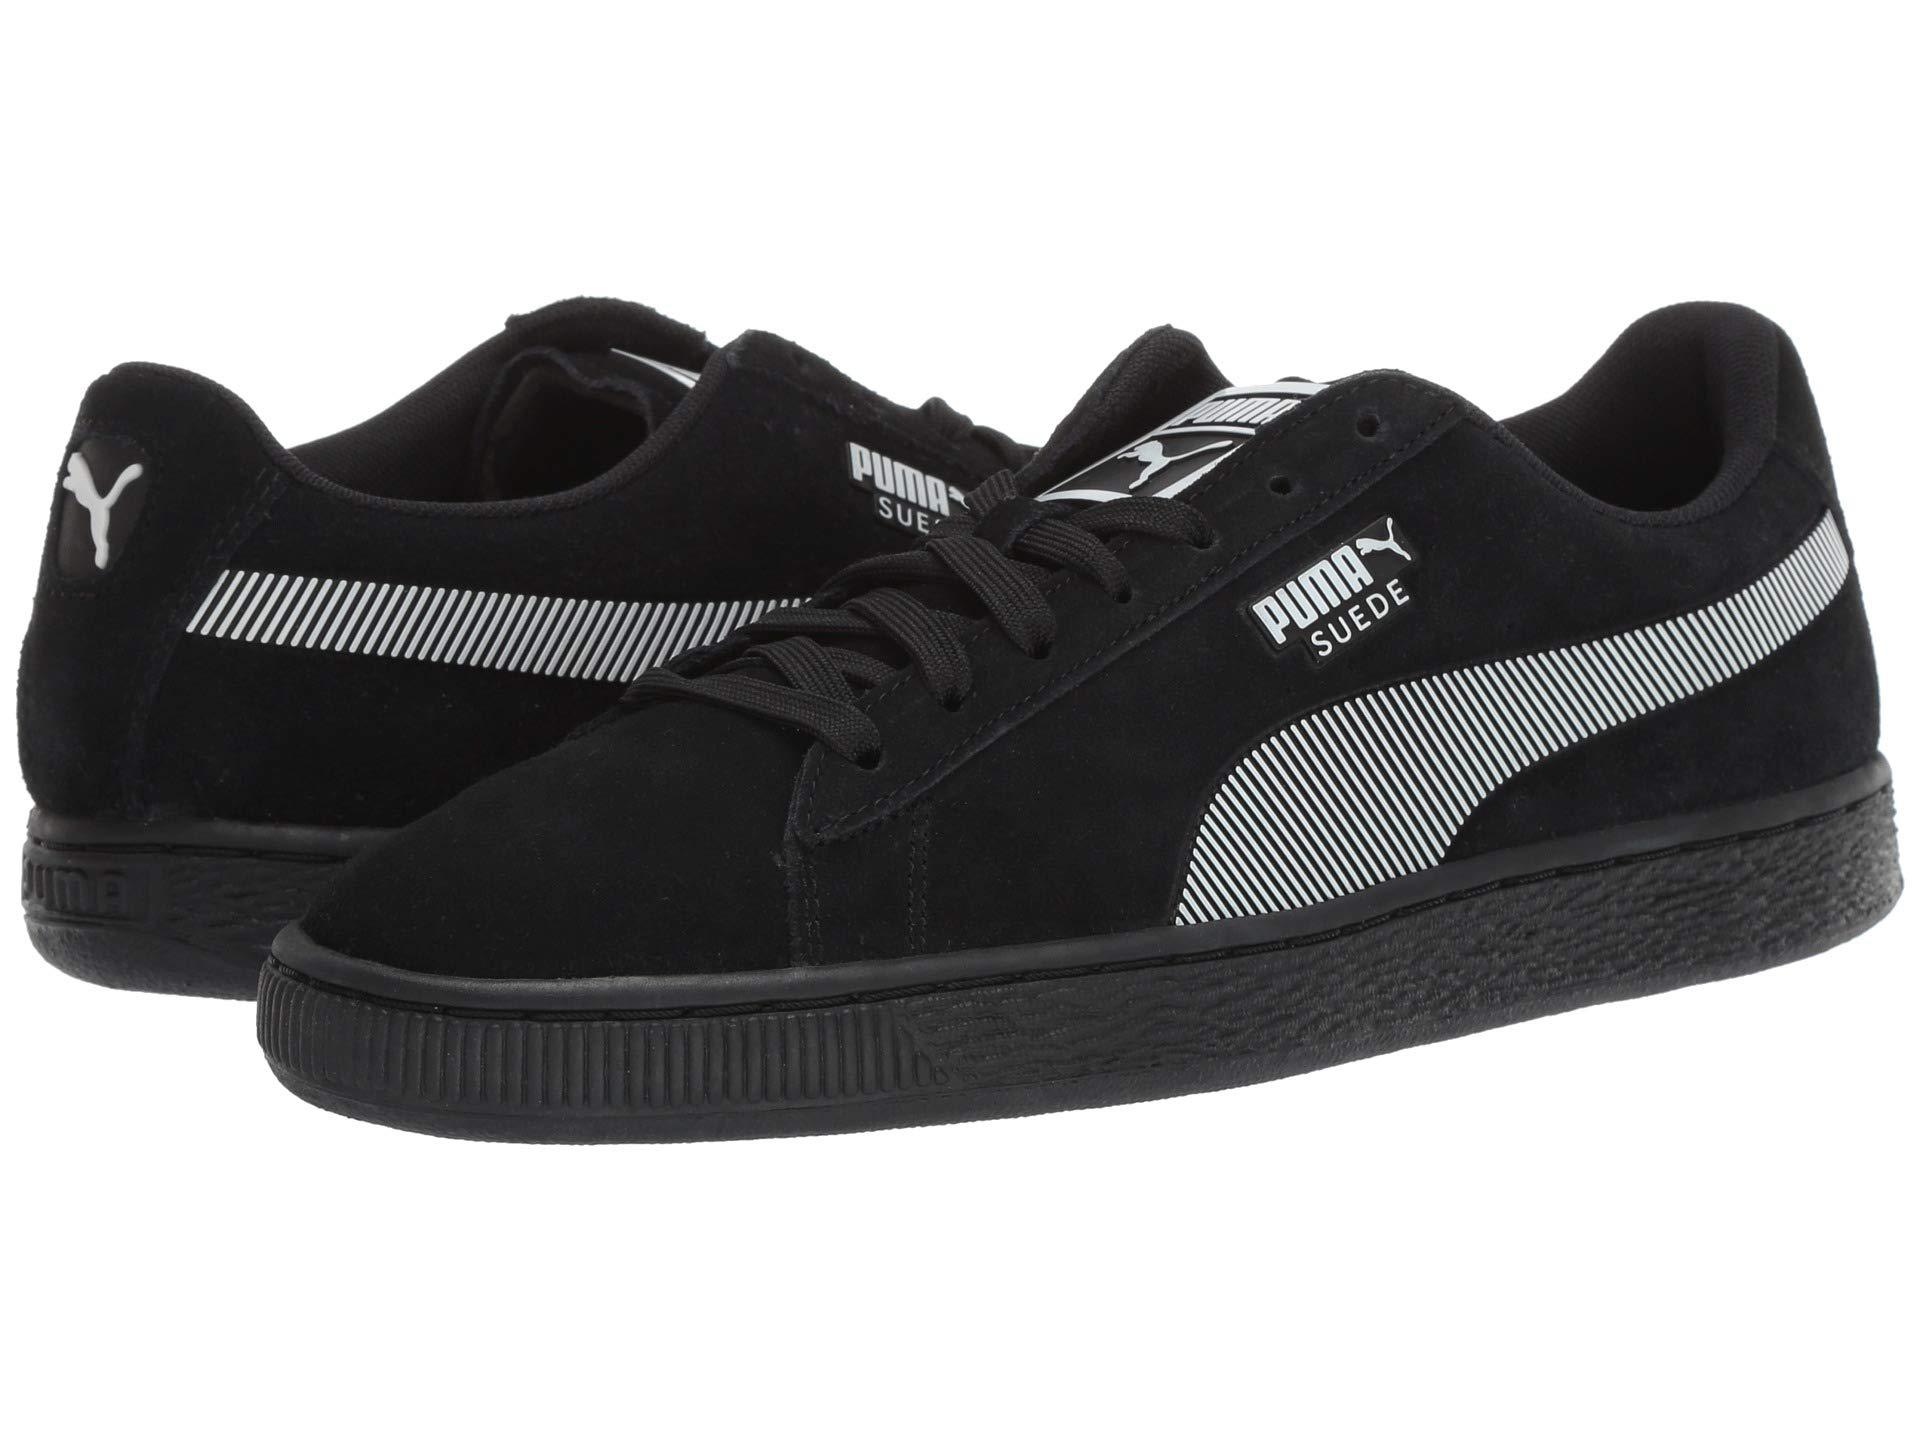 PUMA - Suede Classic Kurim ( Black  White) Men s Lace Up Casual Shoes for.  View fullscreen 1c161ab7d